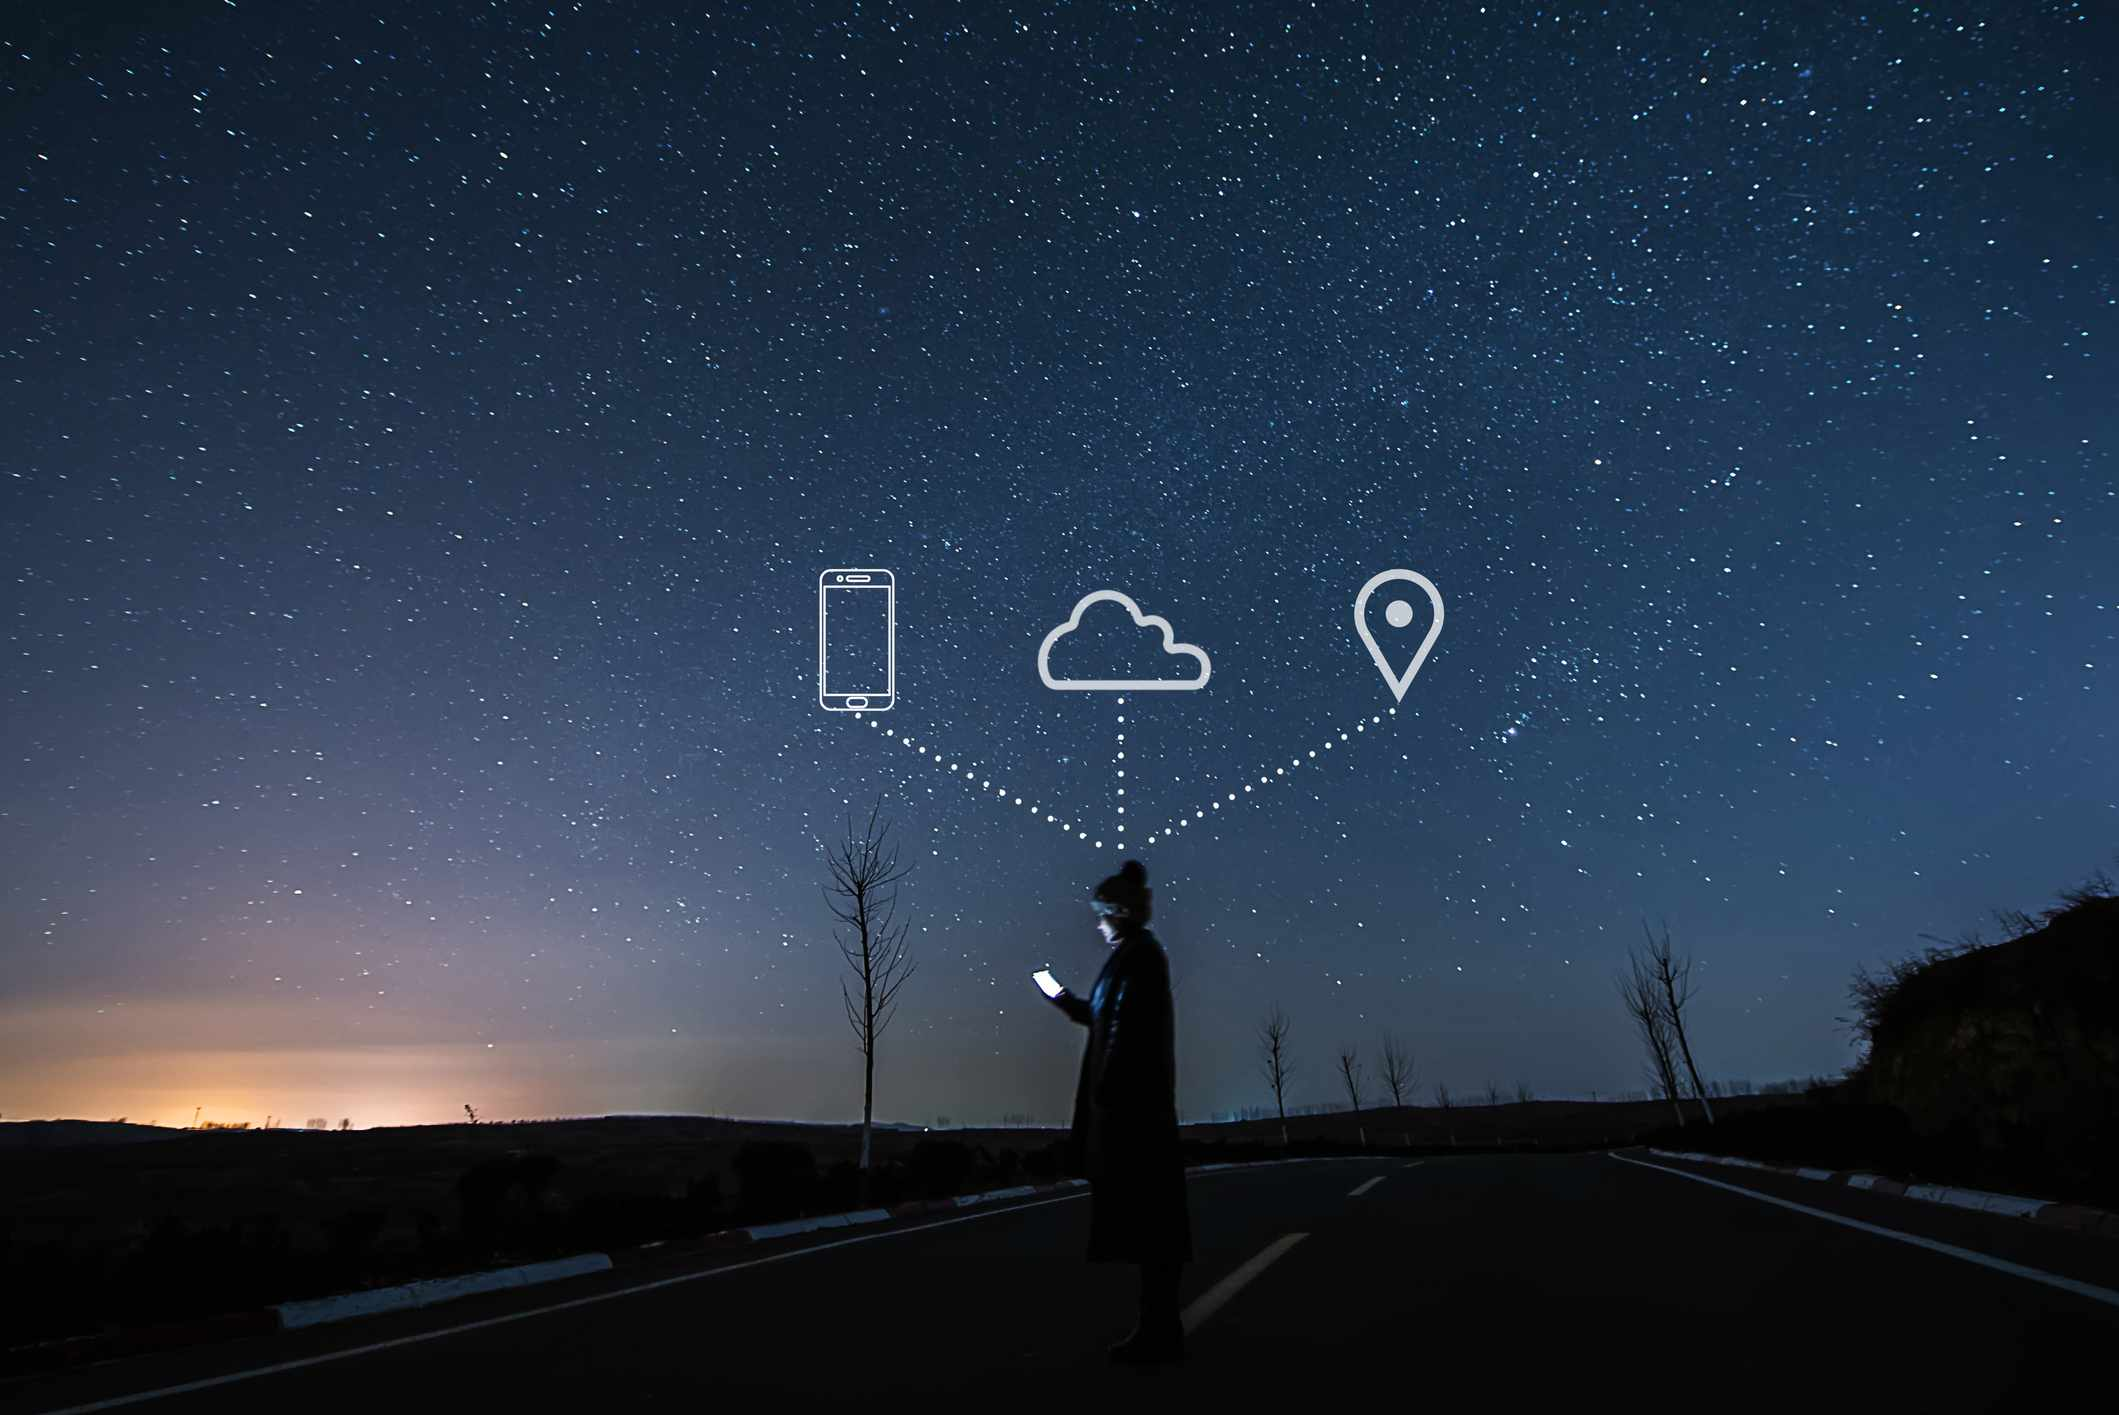 Someone using a smartphone on a starry night, with phone, cloud, and map icons in the sky above.